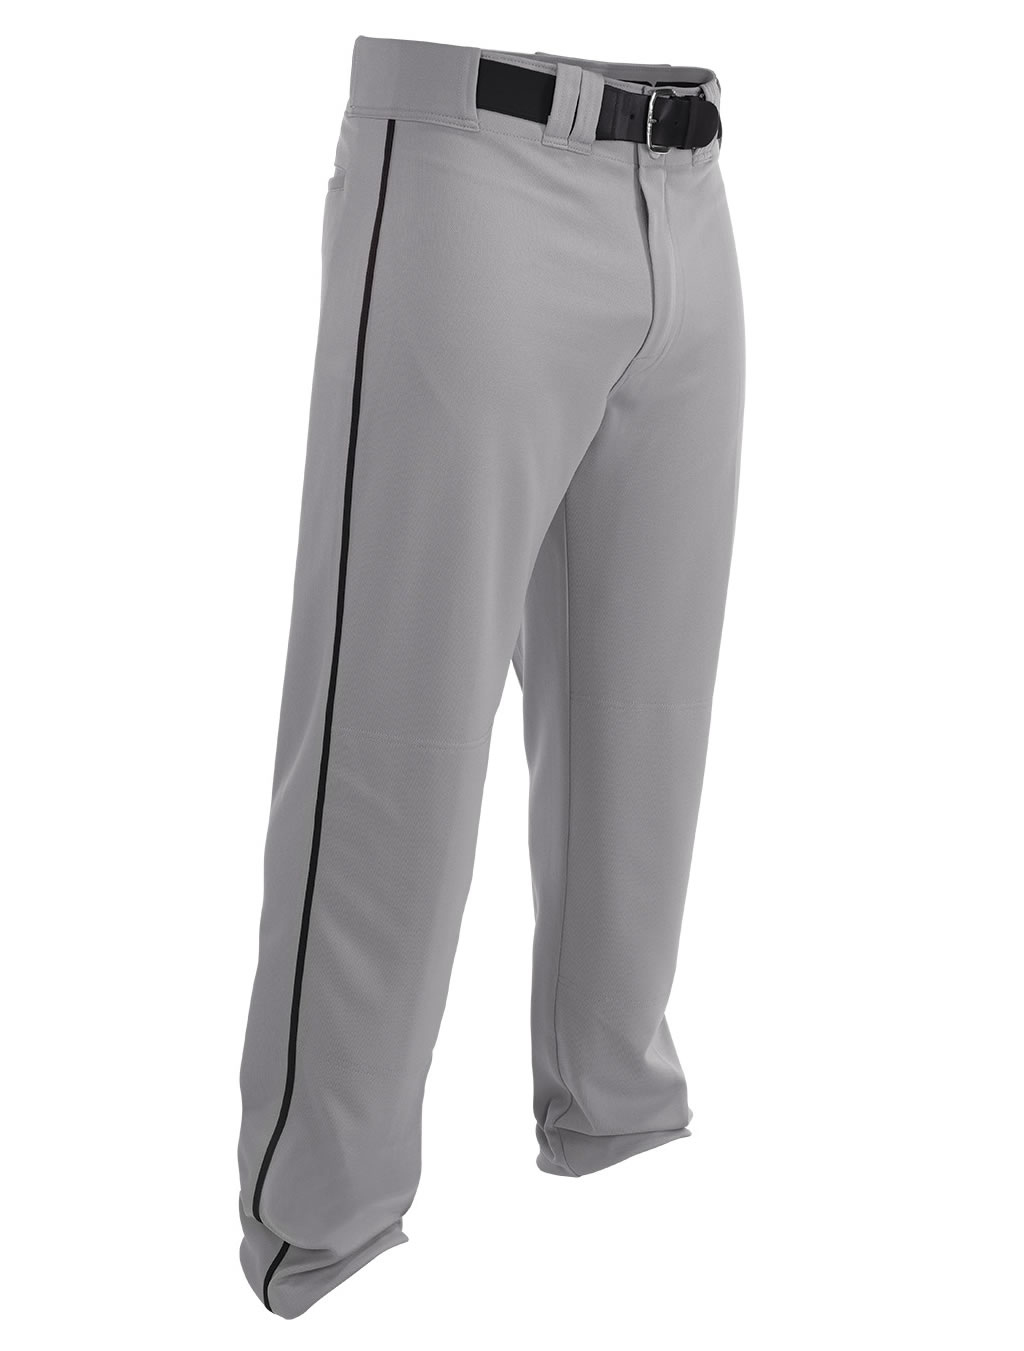 Easton Rival 2 Youth Baseball Pant with Piping